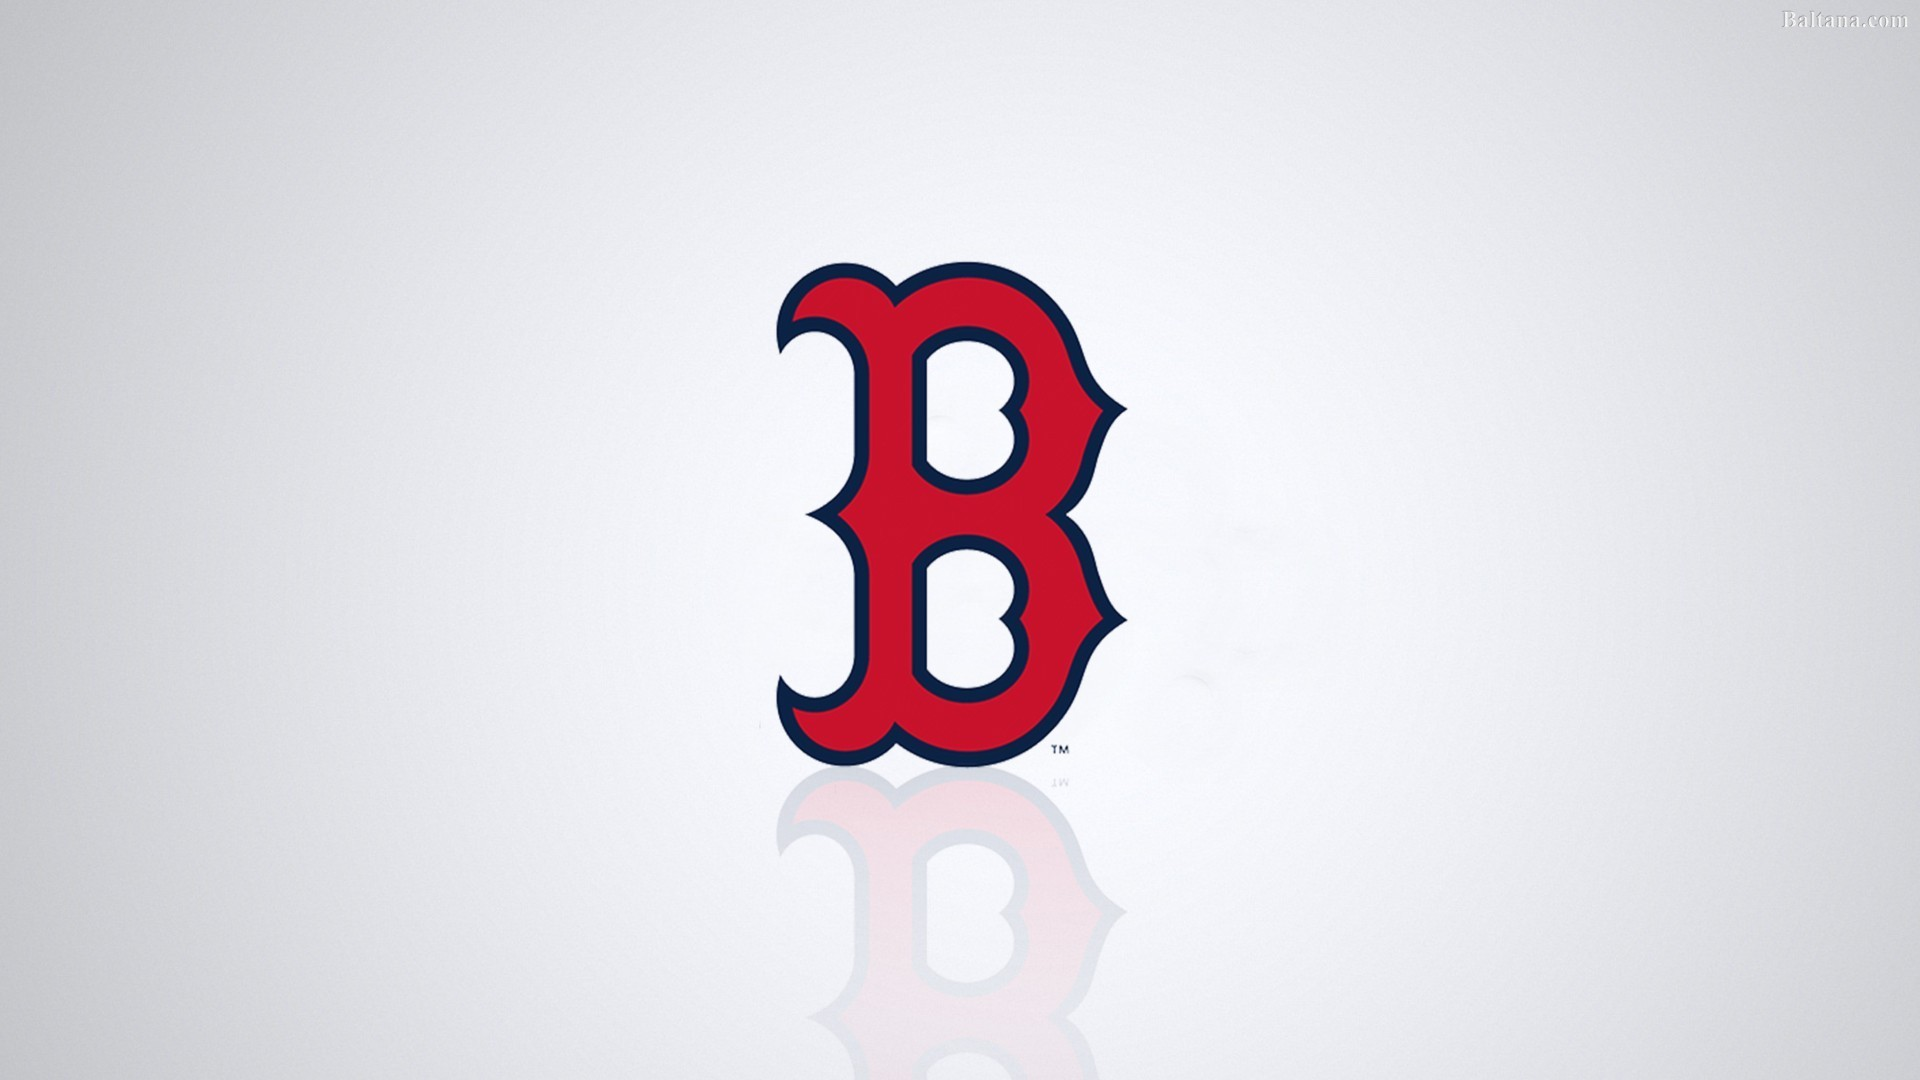 1920x1080 Boston Red Sox Background Wallpaper 33002